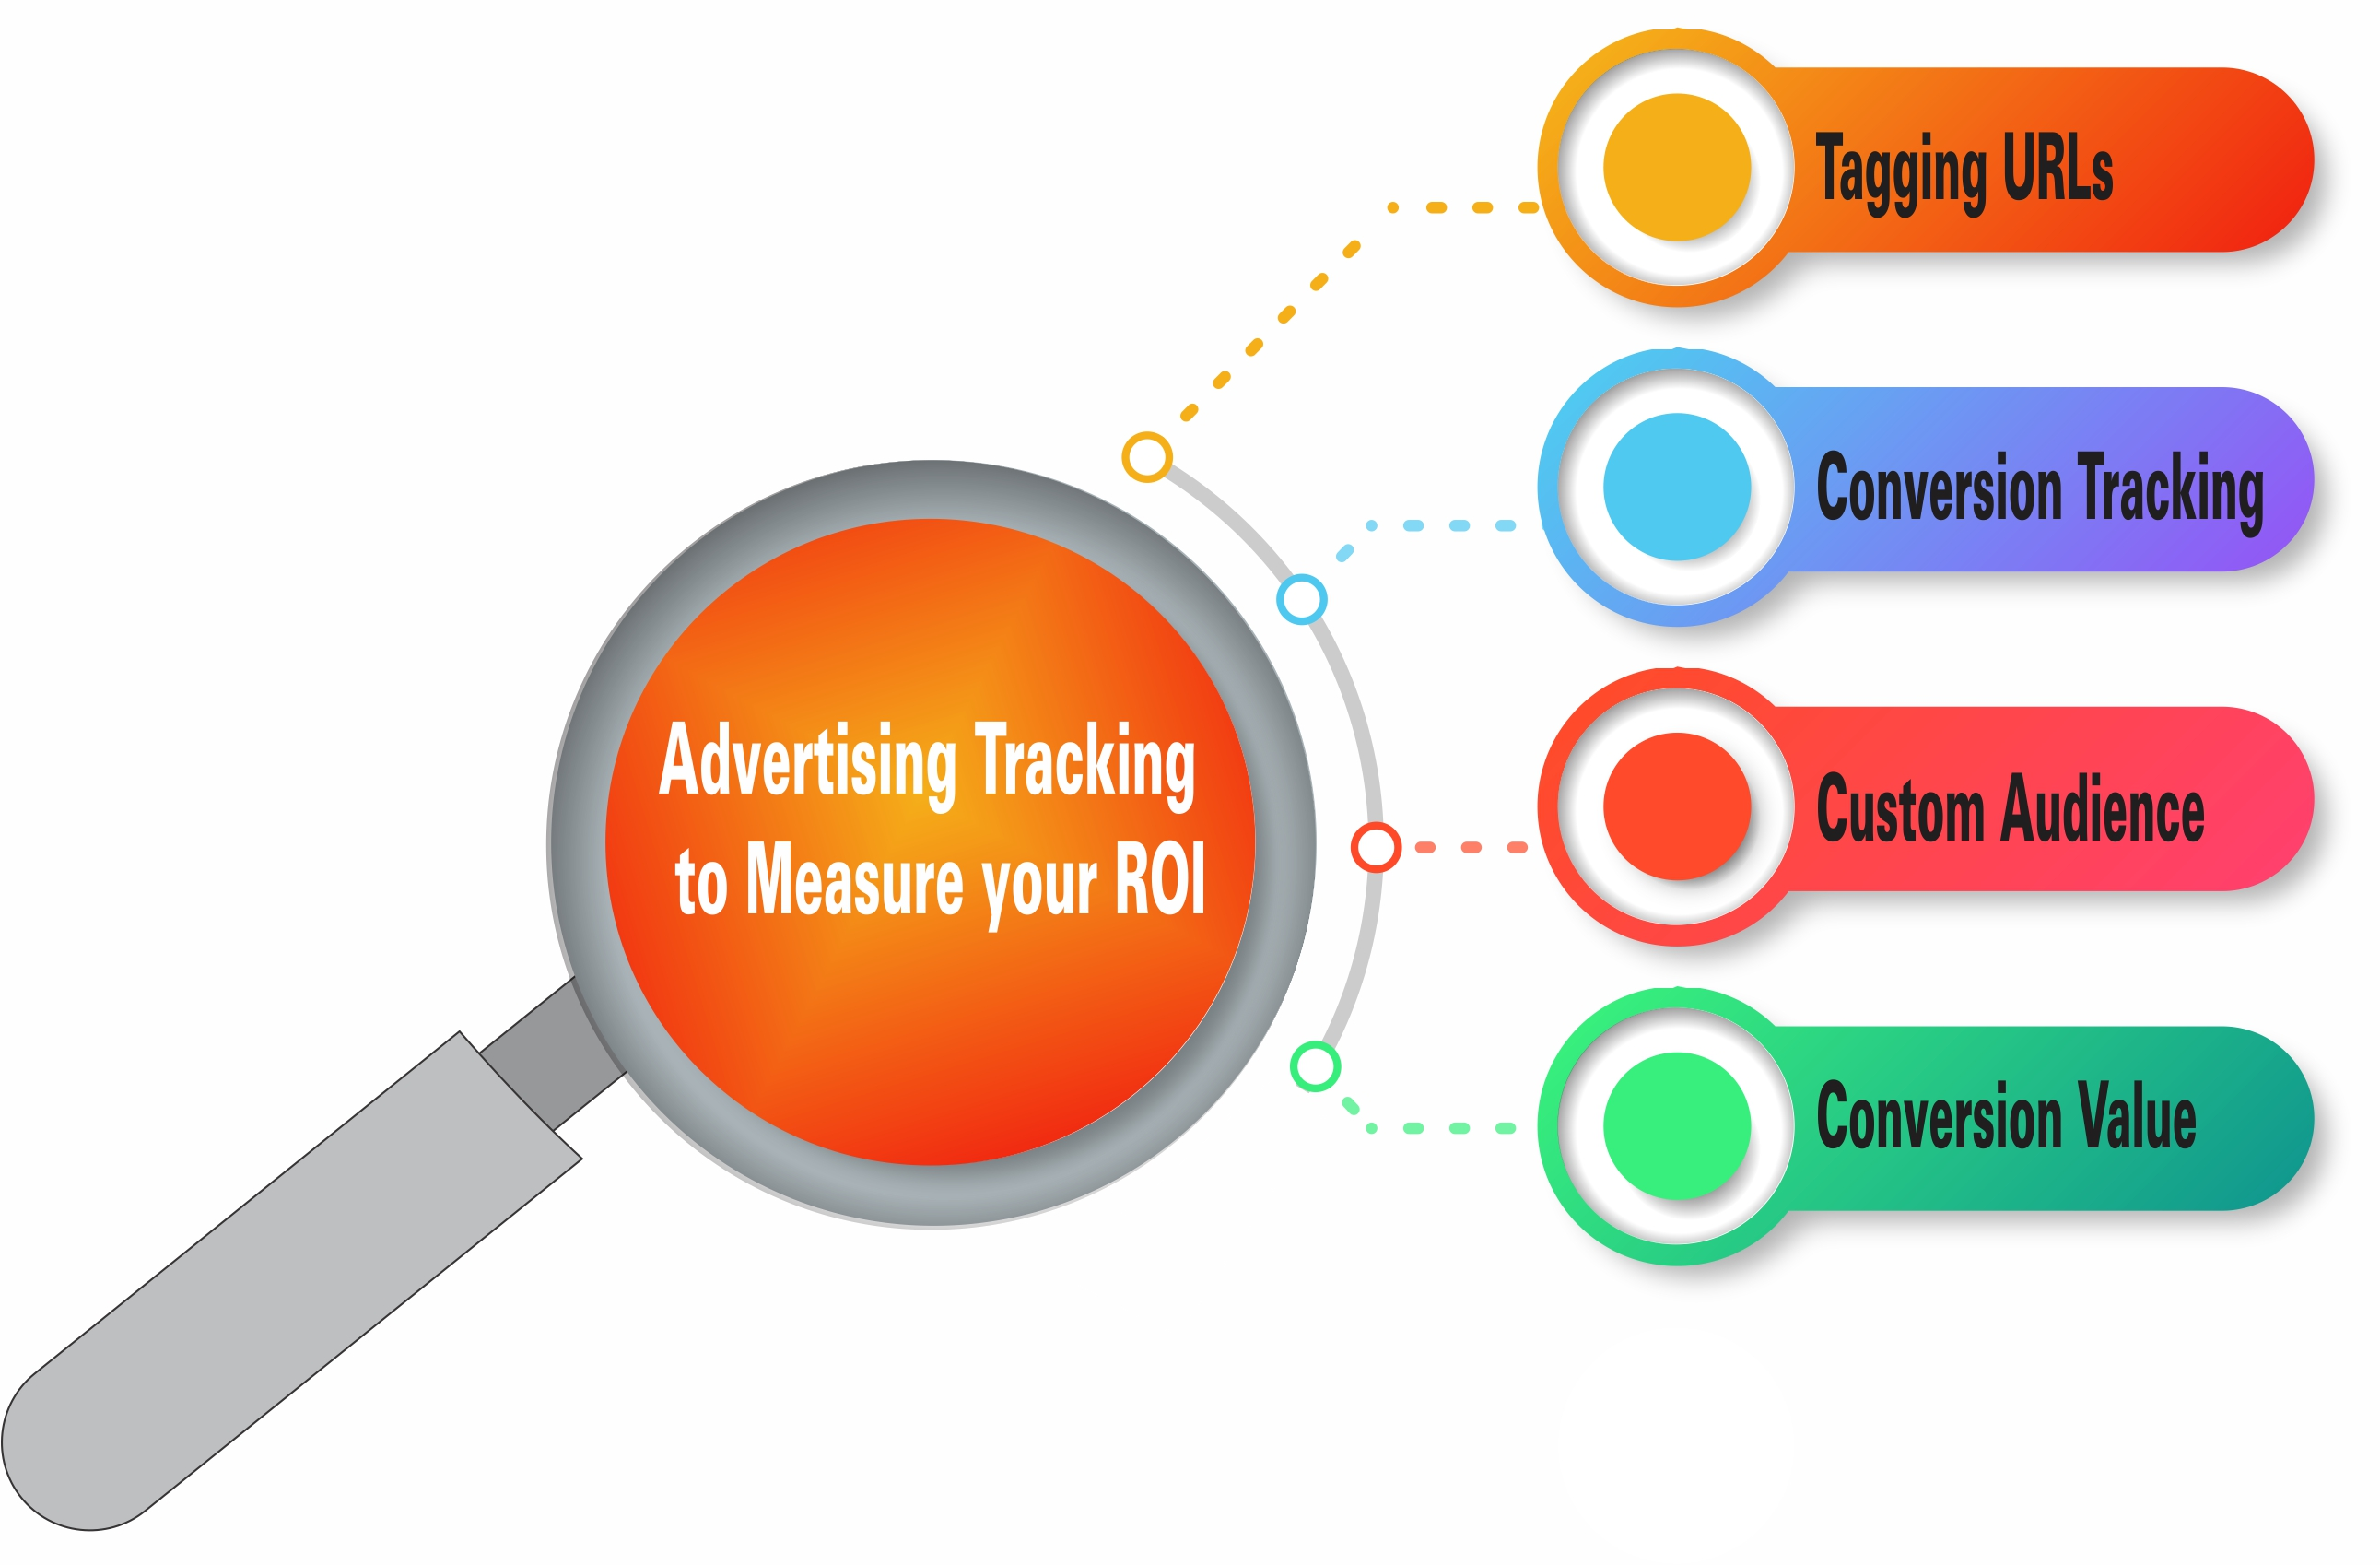 4 Advertising Tracking Techniques to Measure your ROI